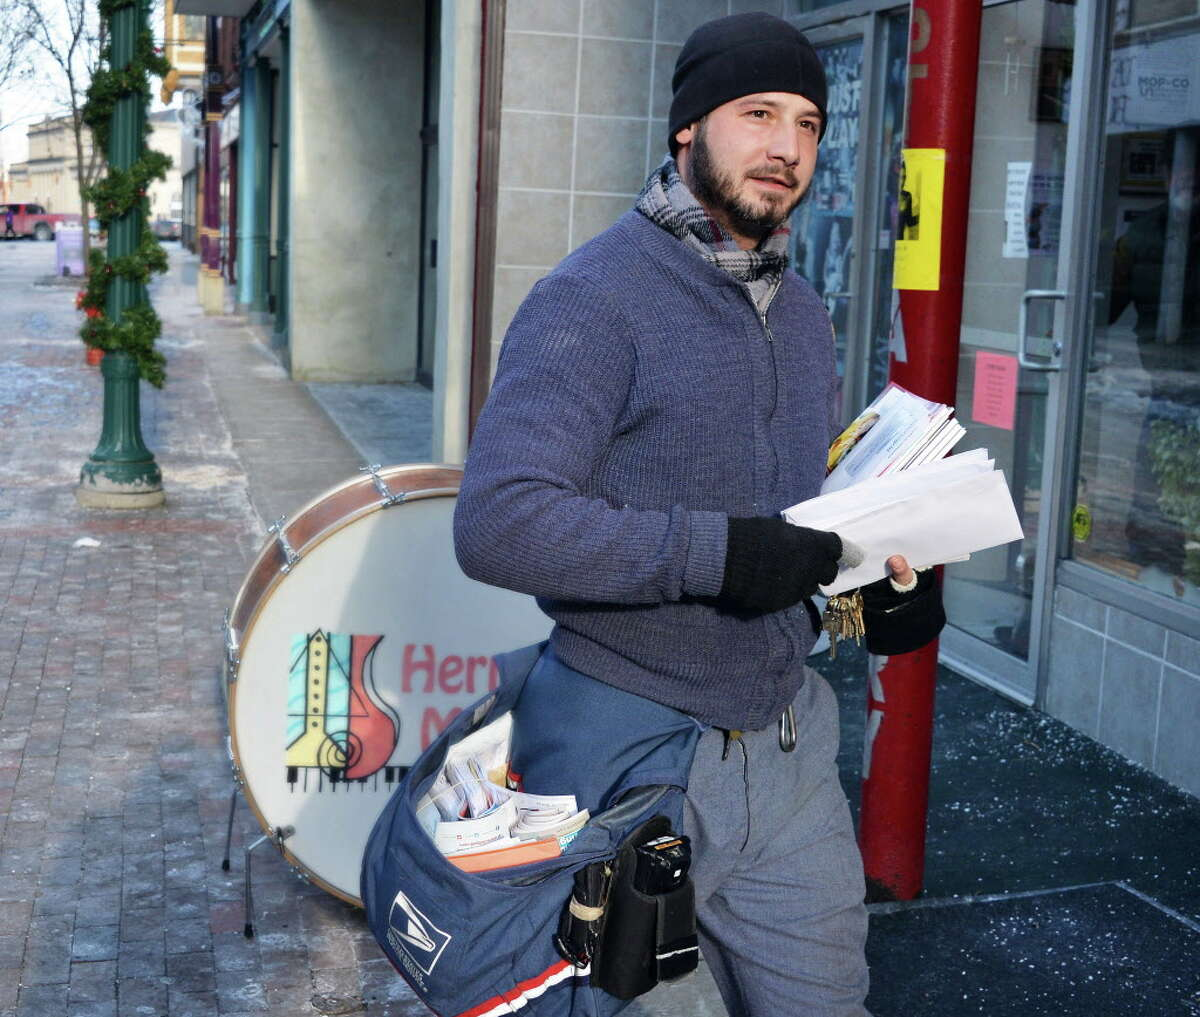 Postal carrier Andrew Mokey of Watervliet delivers mail along Jay Street Thursday Jan. 8, 2015, in Schenectady, NY.